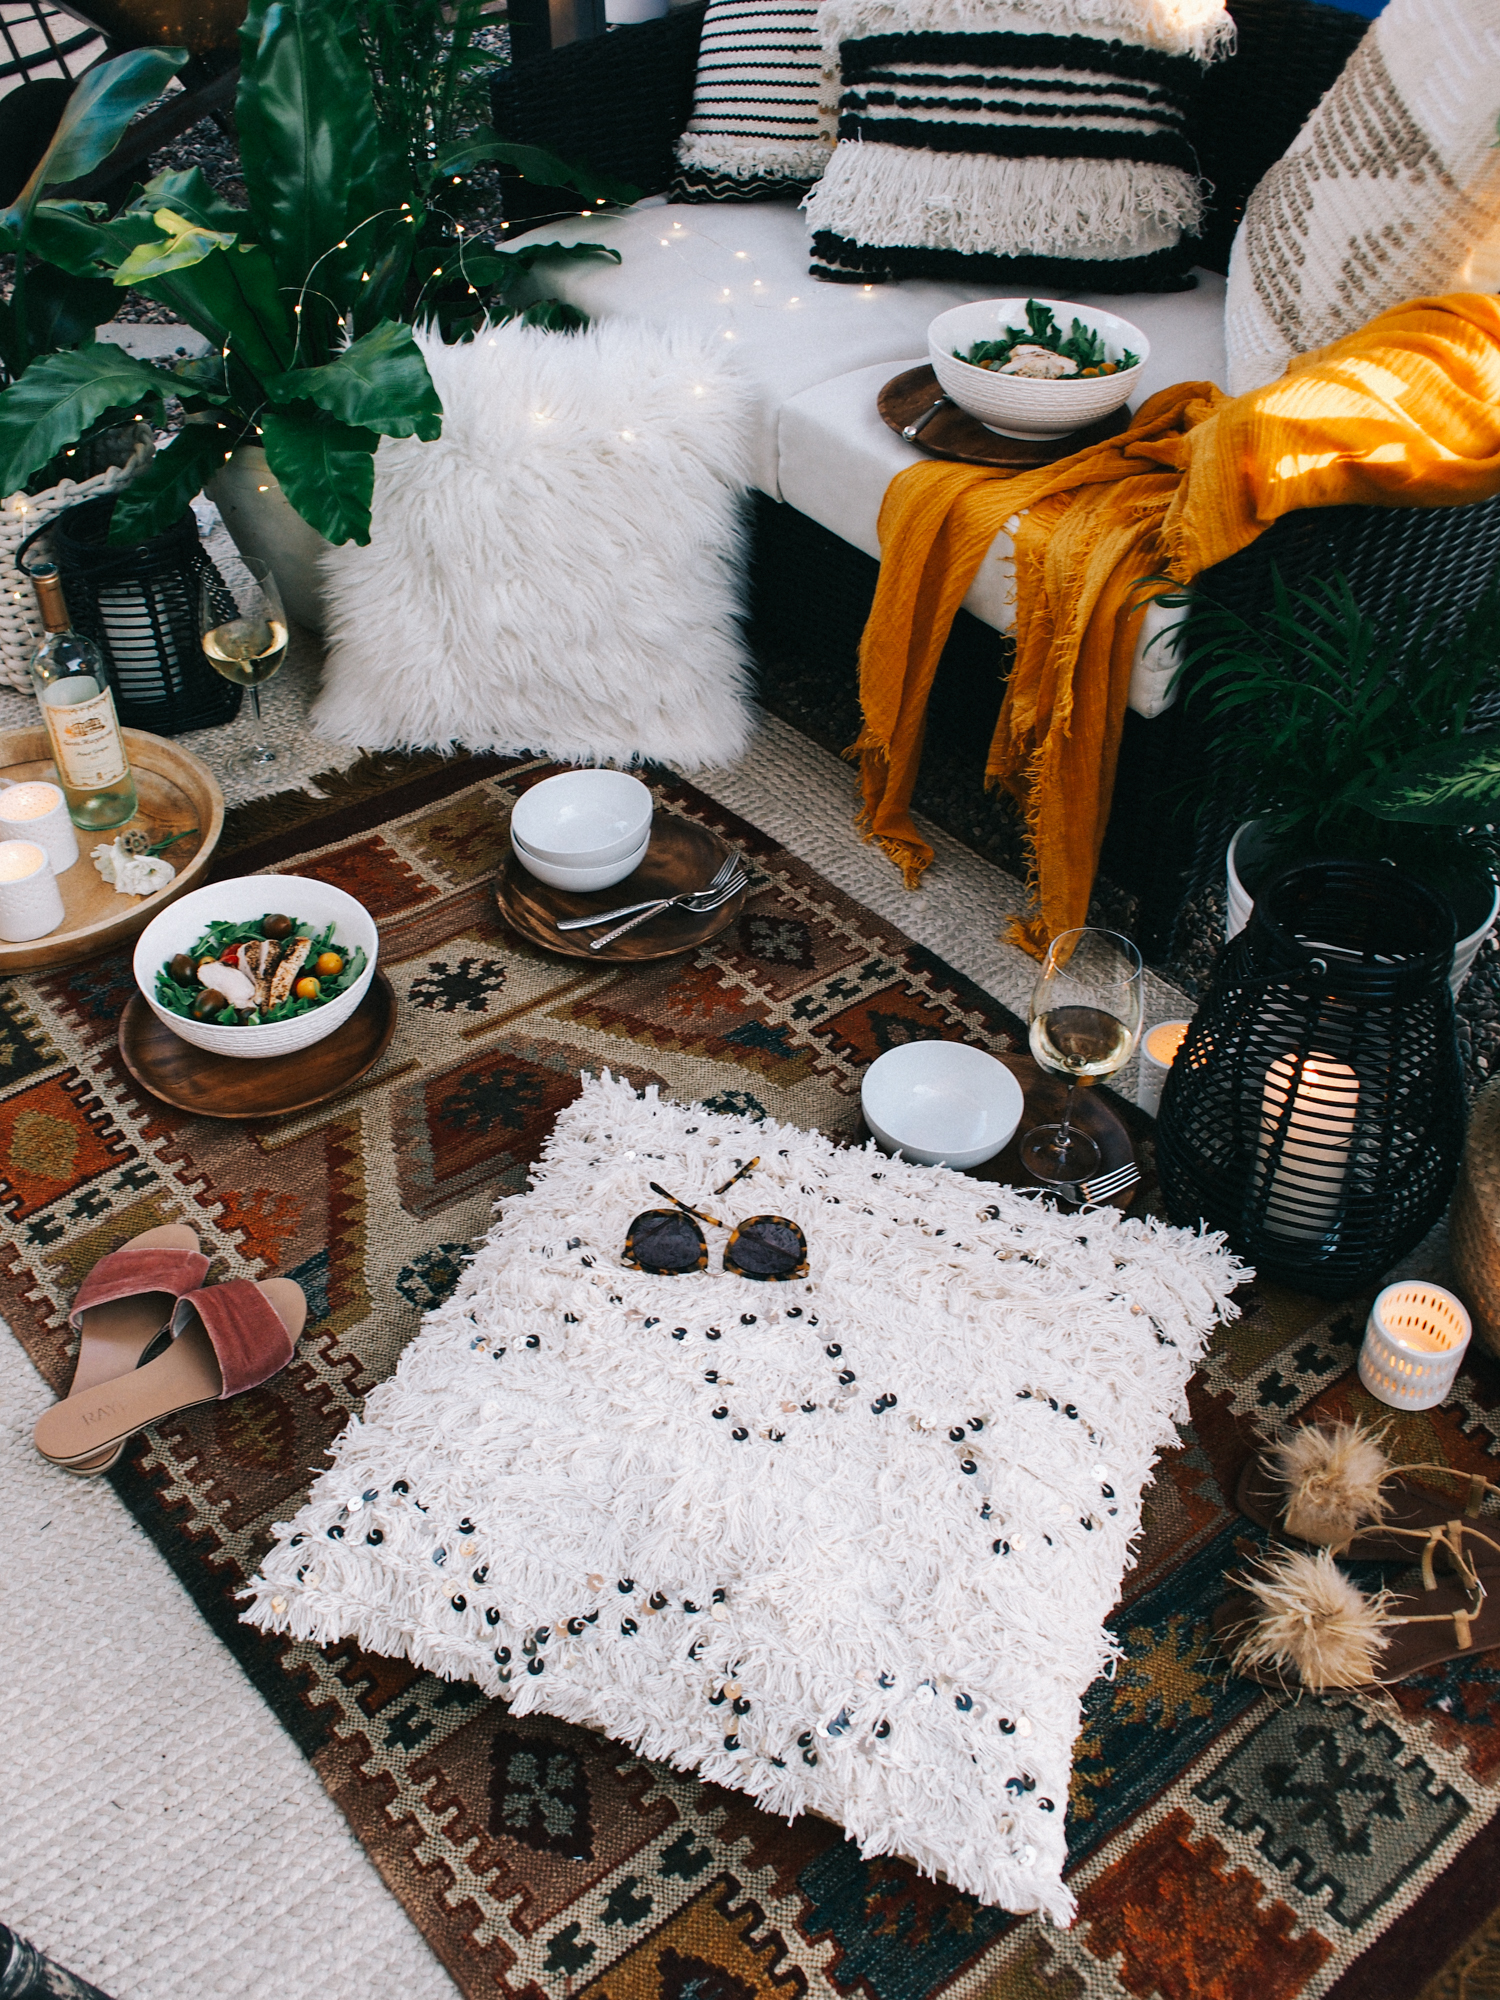 Piles of rugs and pillows for an outdoor BBQ | A Fabulous Fete